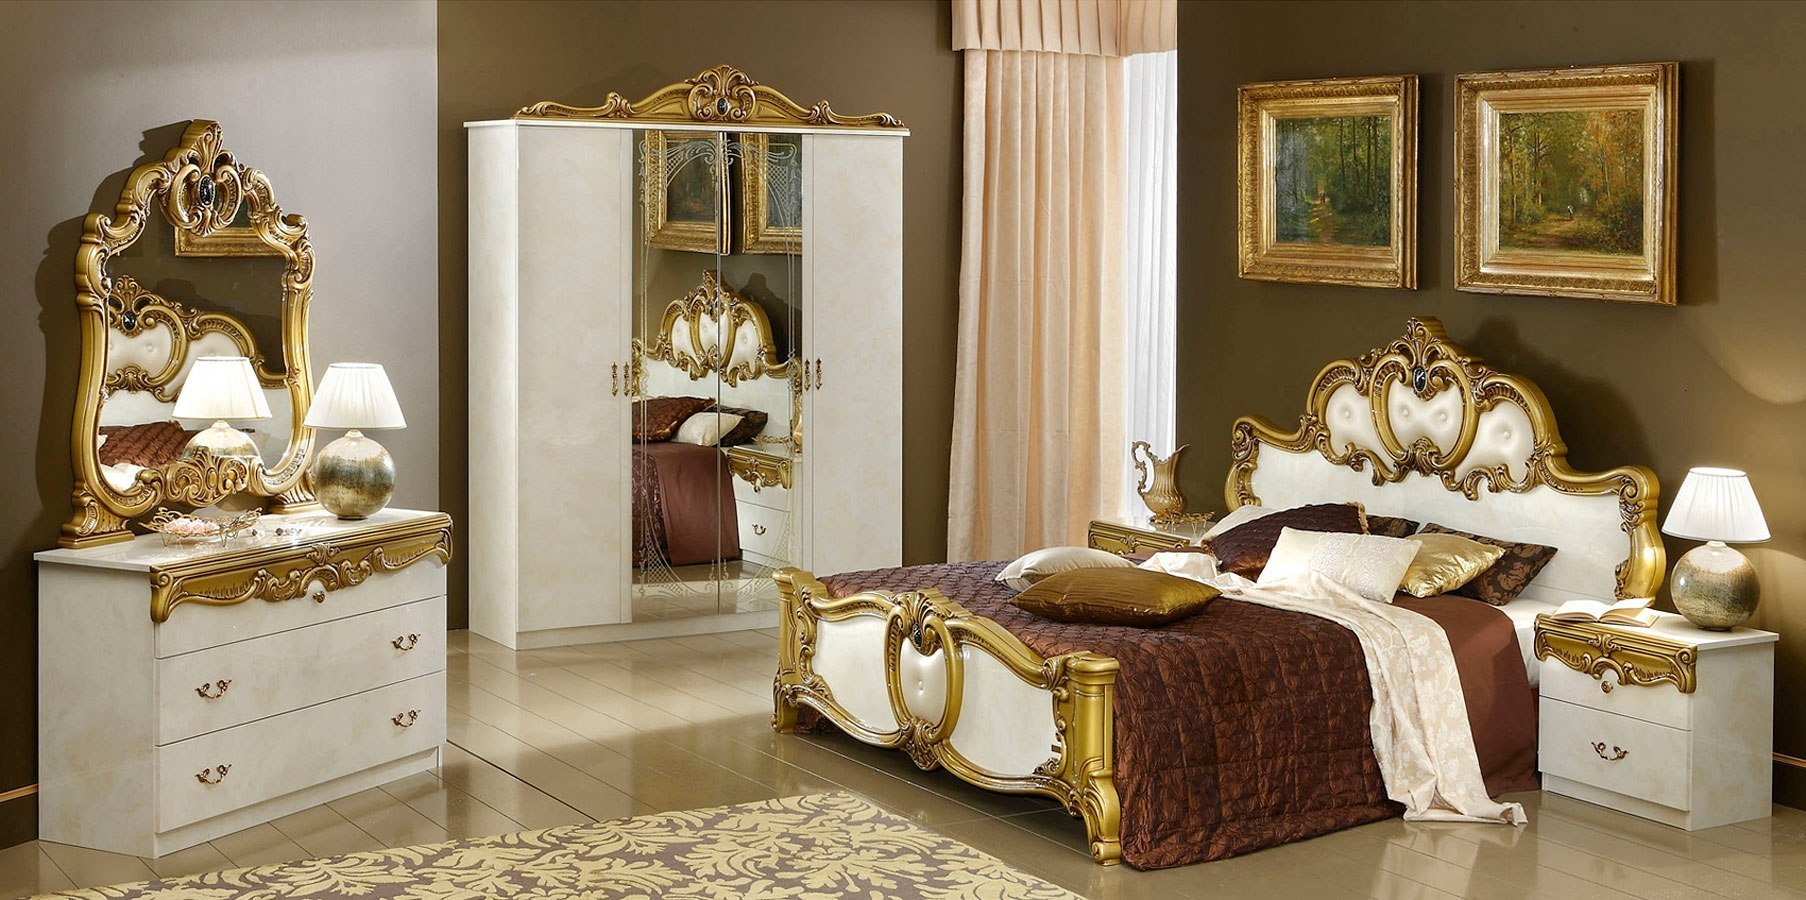 Barocco Bedroom Set Ivory And Gold By Esf Furniture